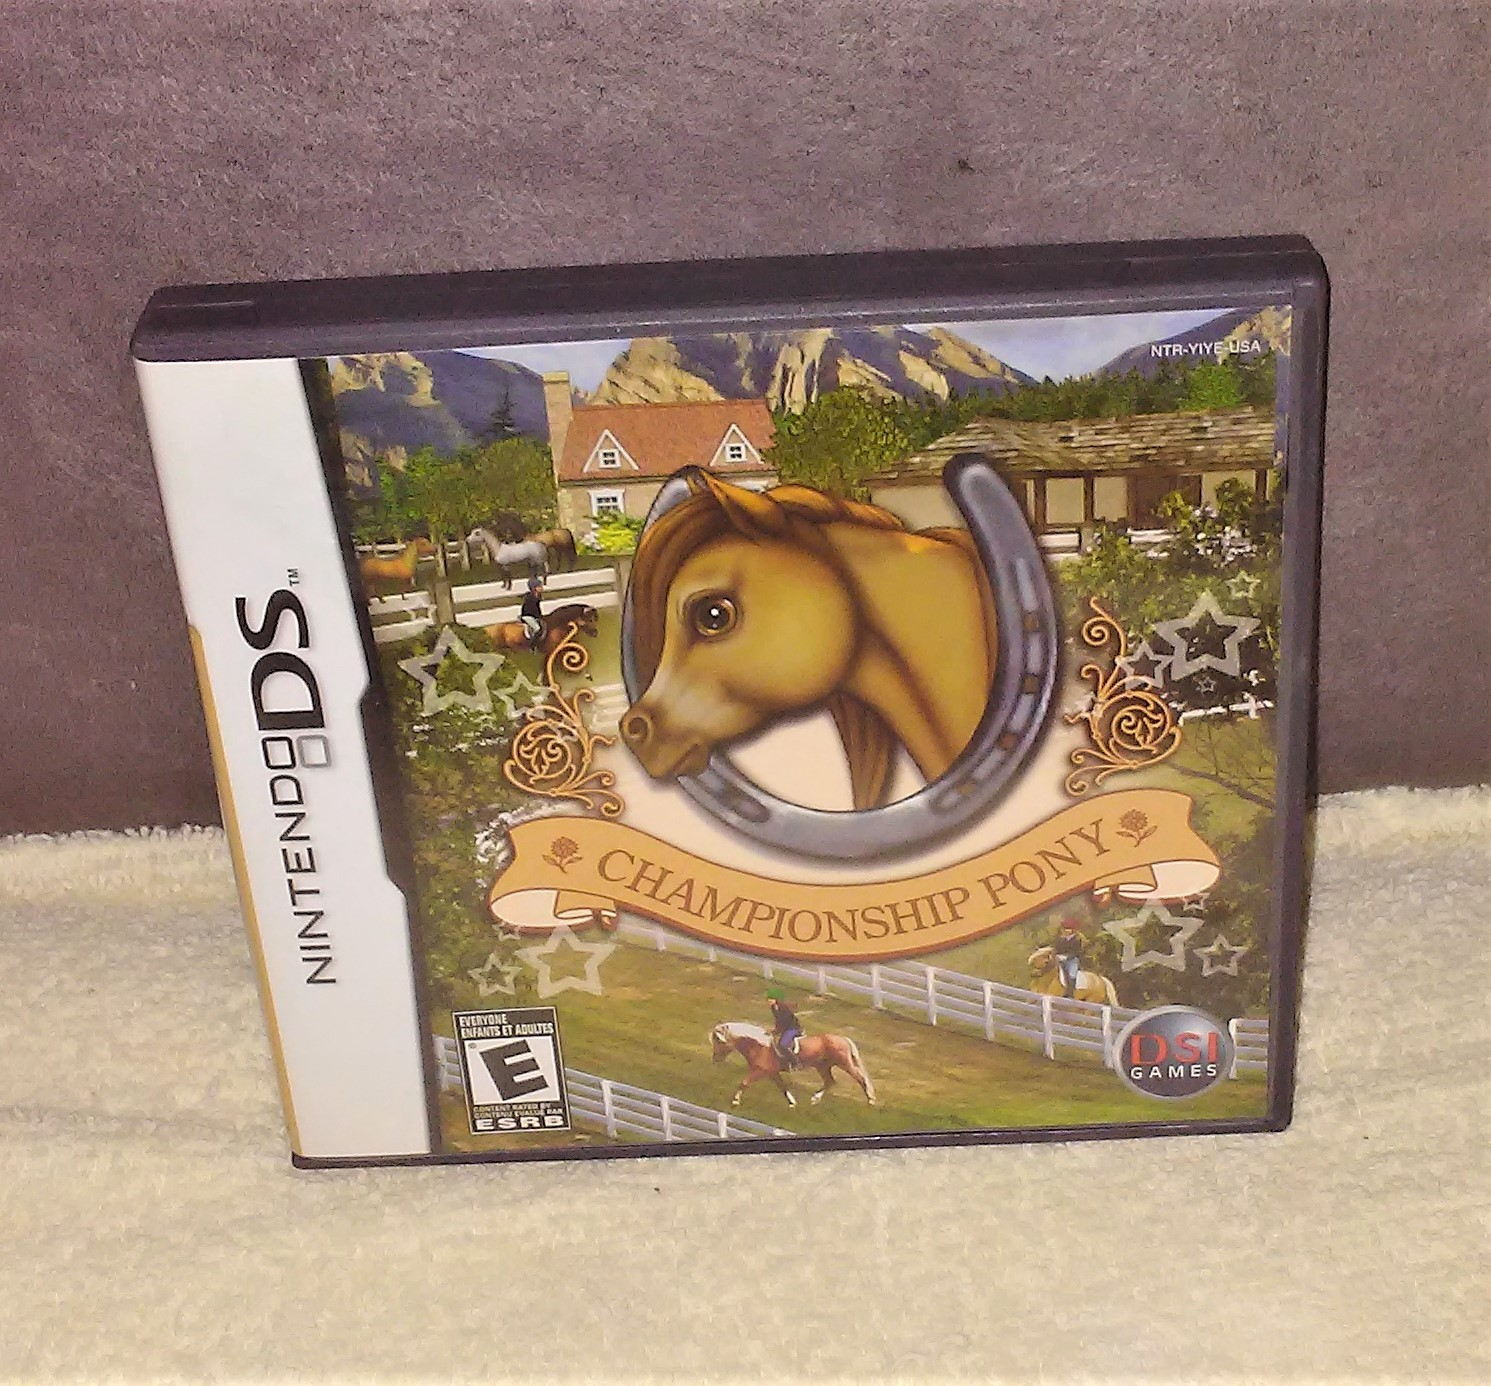 Nintendo DS CHAMPIONSHIP PONY Video Game in case with Instructions from 2007